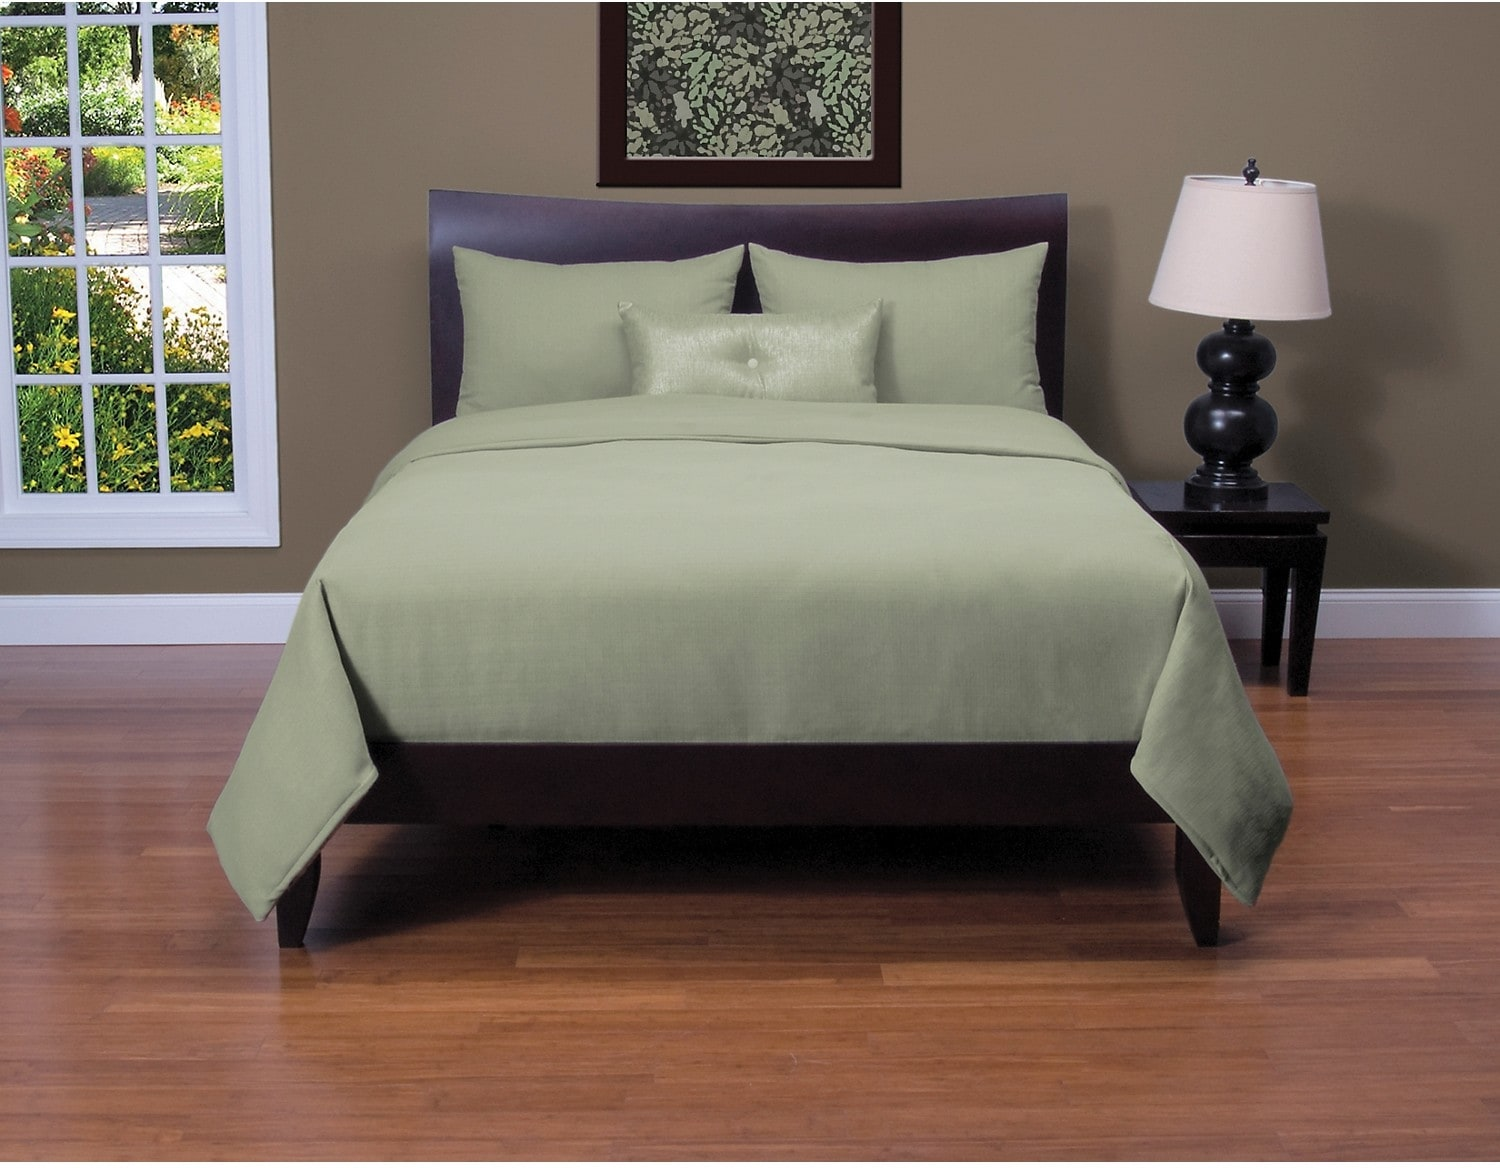 Belfast 4 Piece Queen Duvet Cover Set - Sage